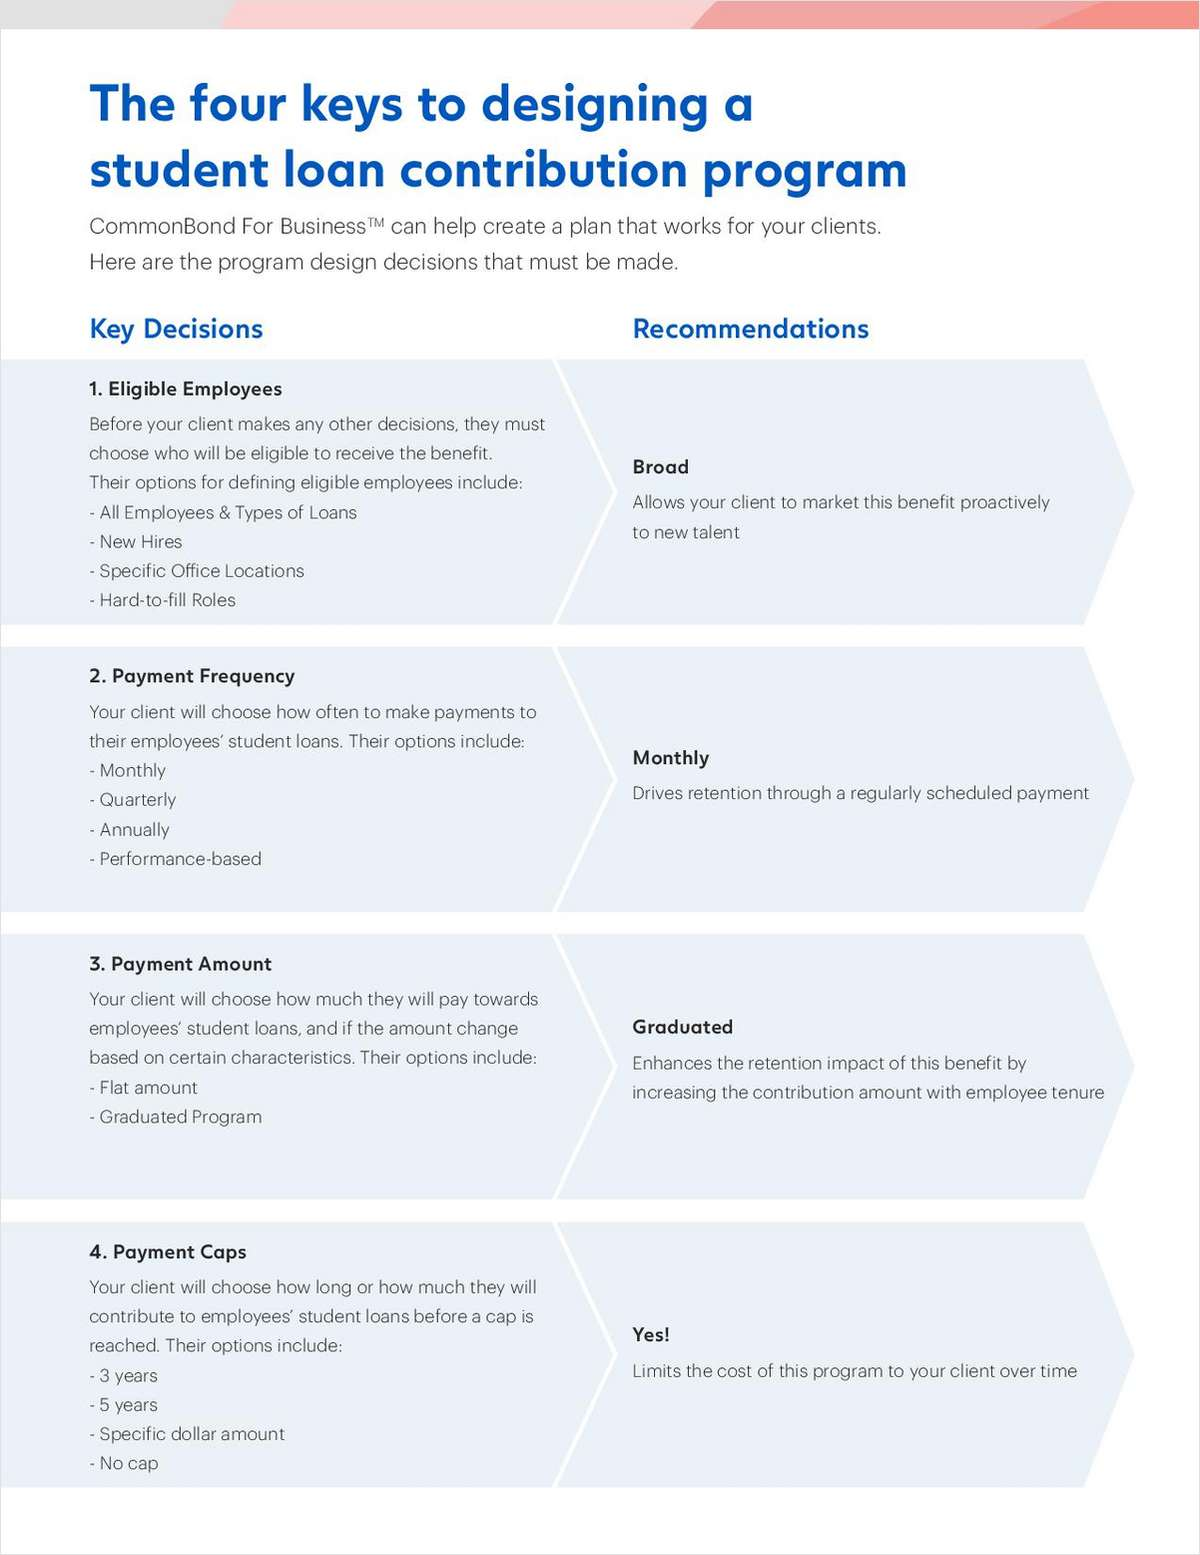 4 Keys to Designing a Student Loan Contribution Program